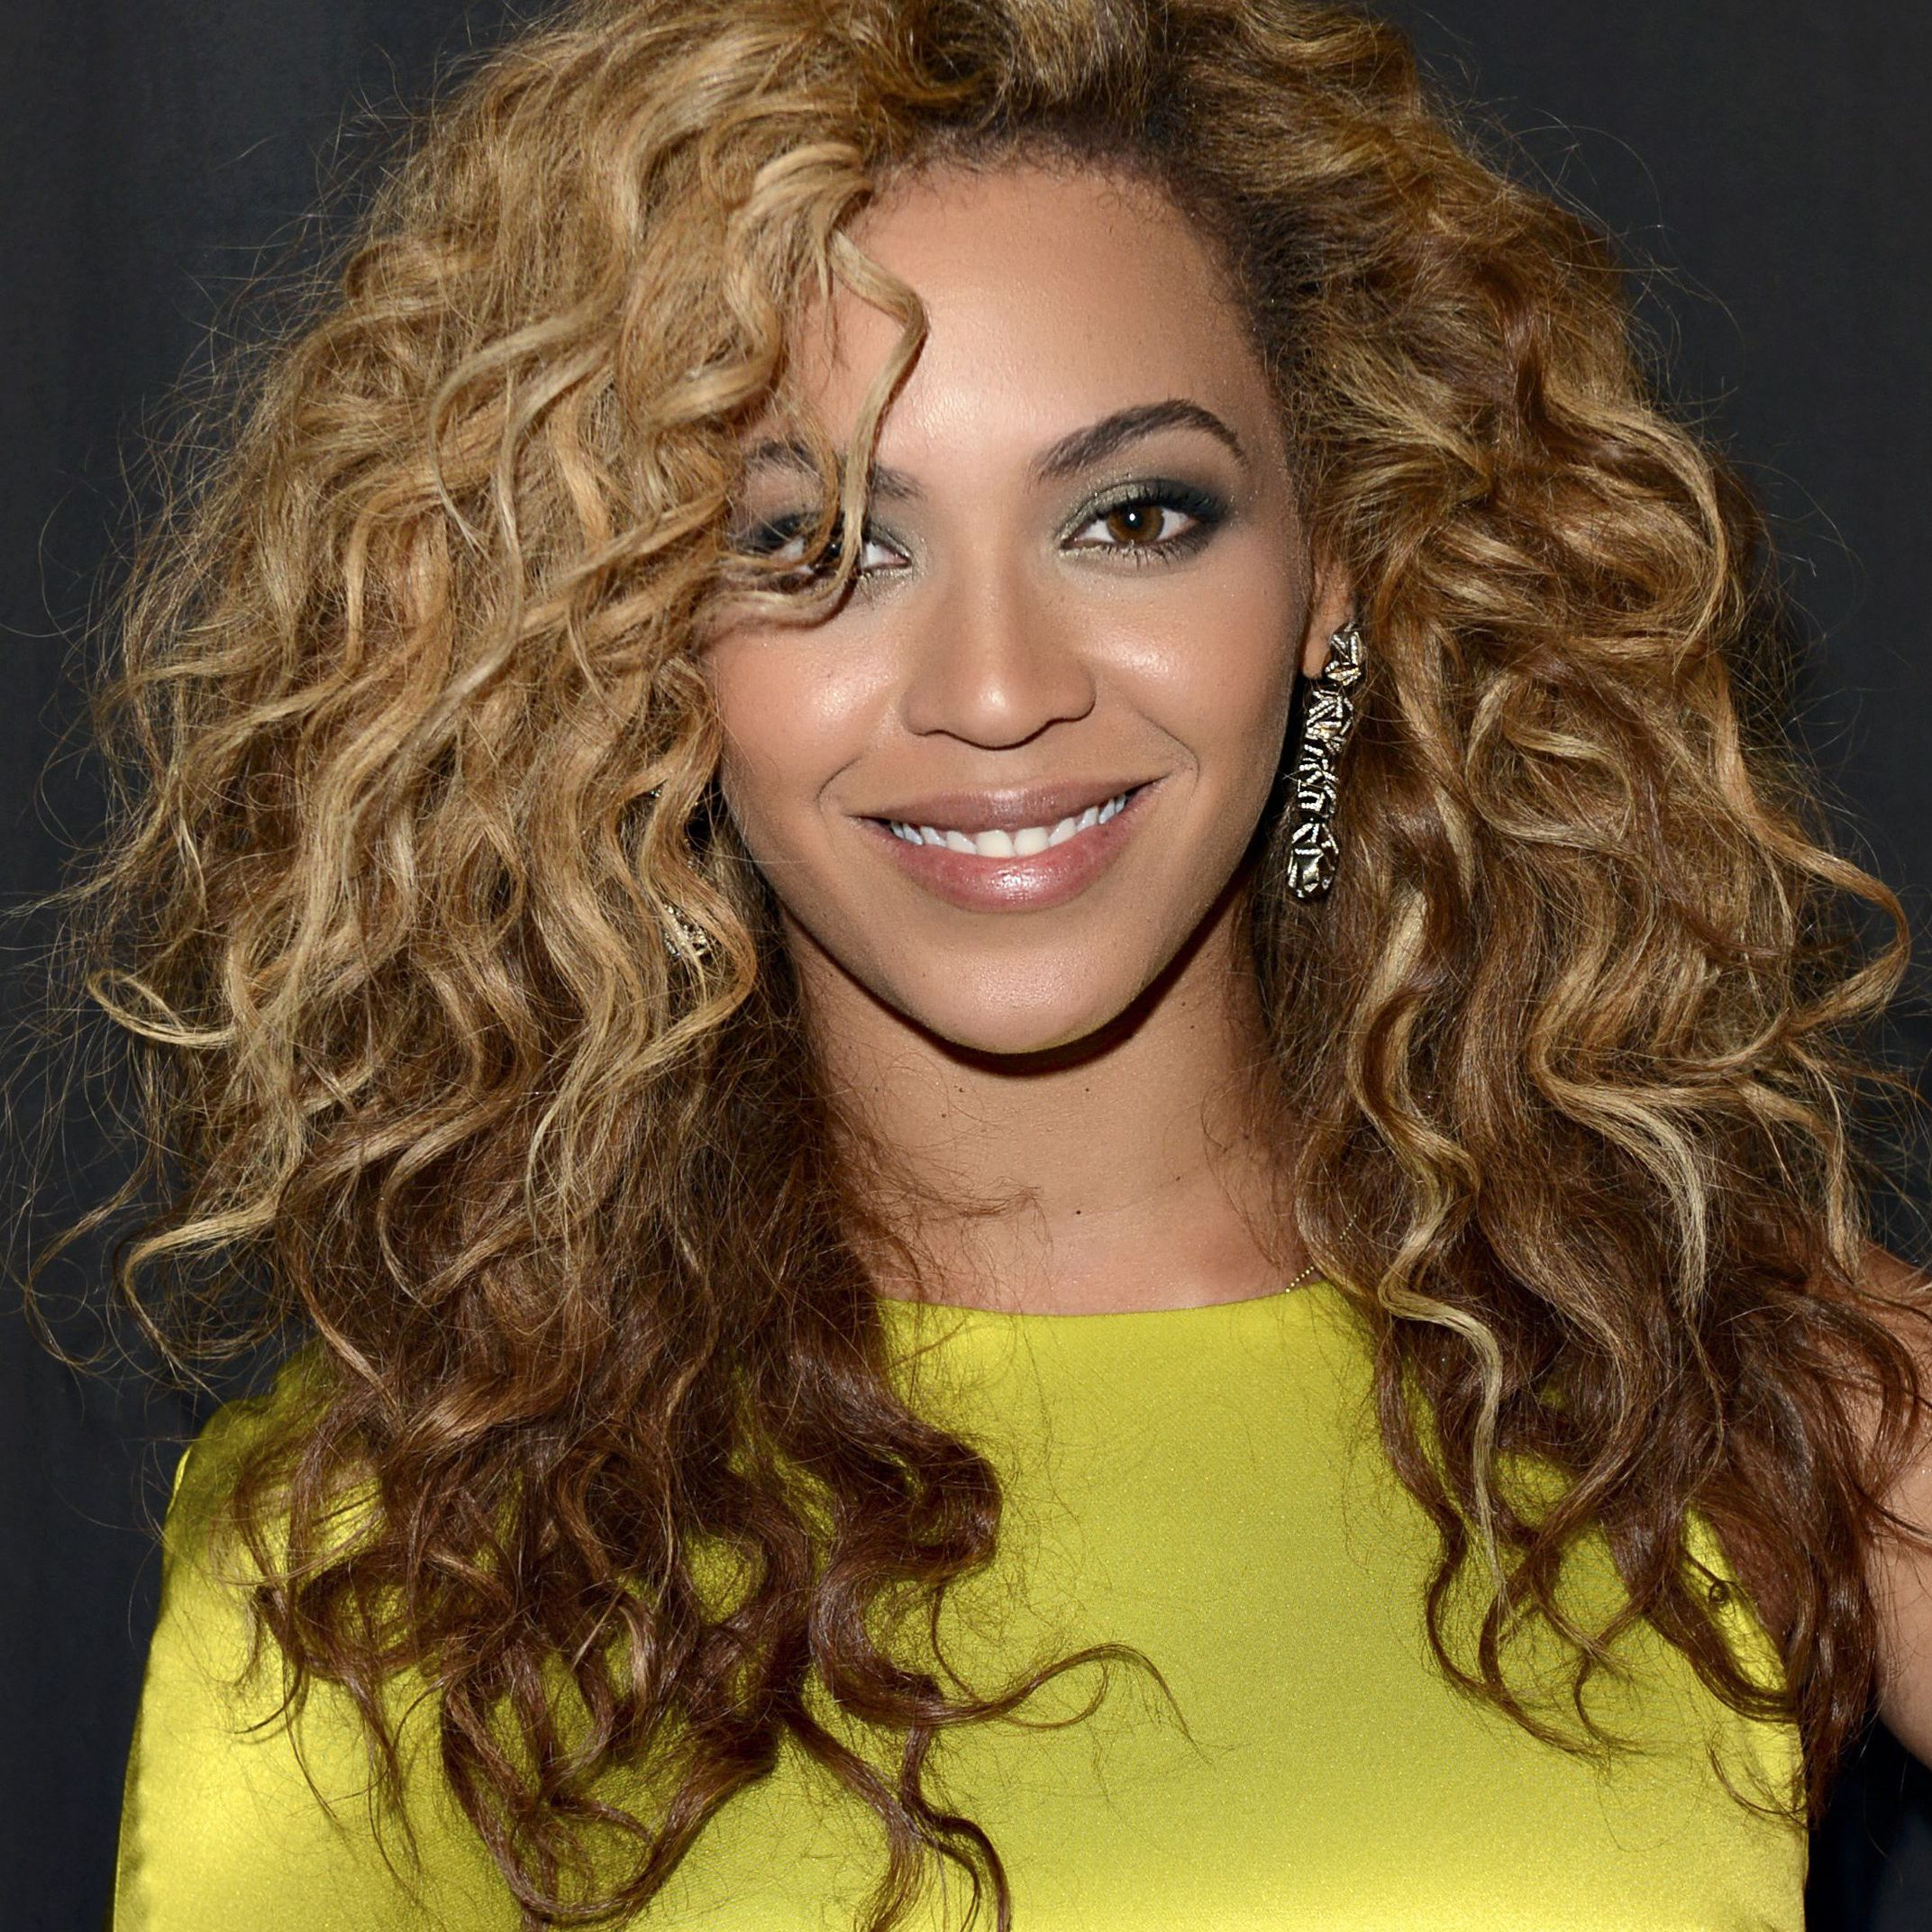 15 Pics Of Celebs With Honey Blonde Hair That Are Too Good To Ignore